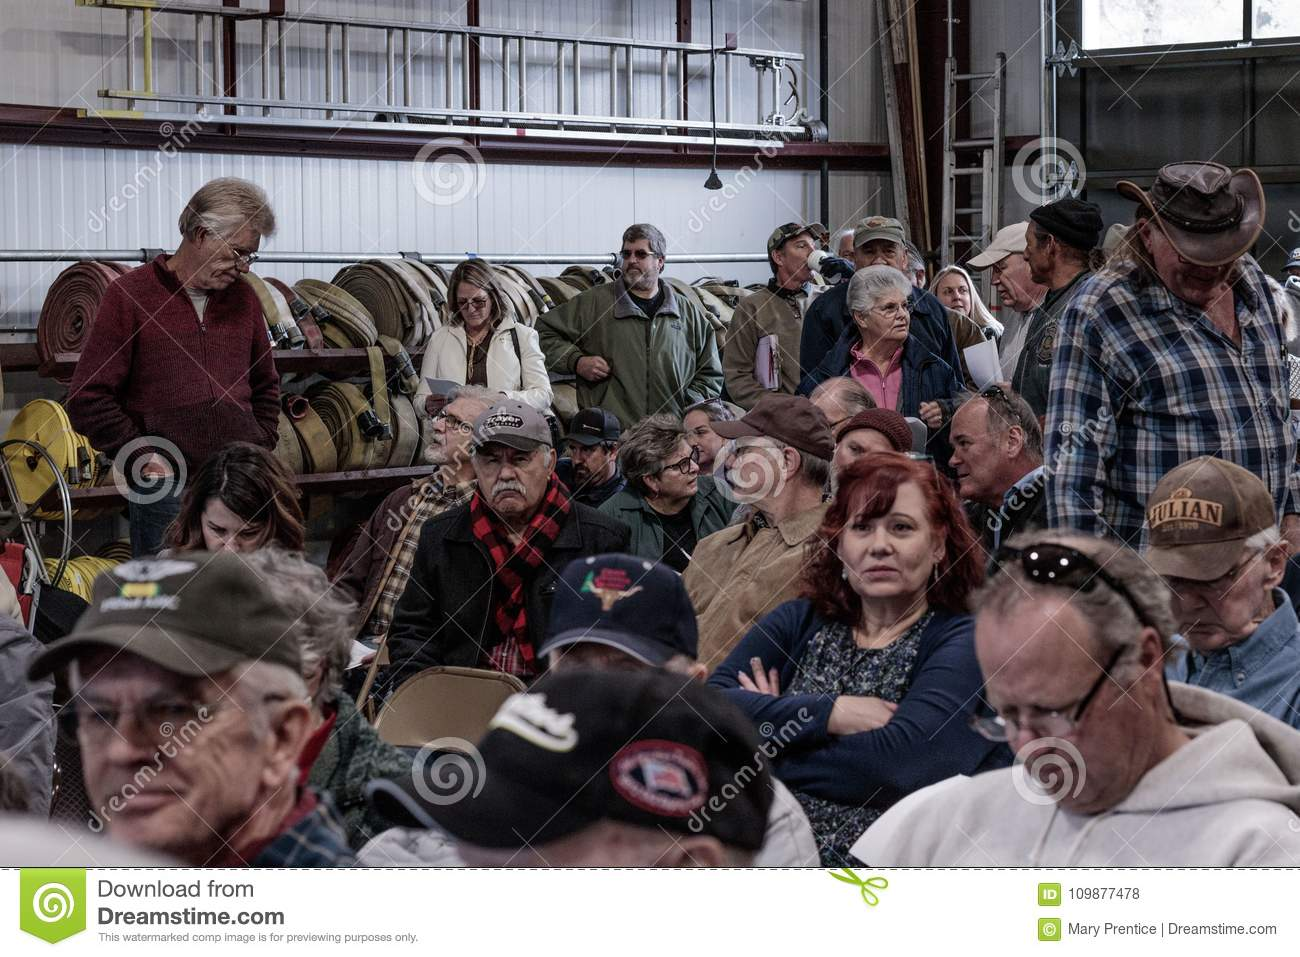 Contentious Meeting On 02-13-2018 In Small Rural Town Of